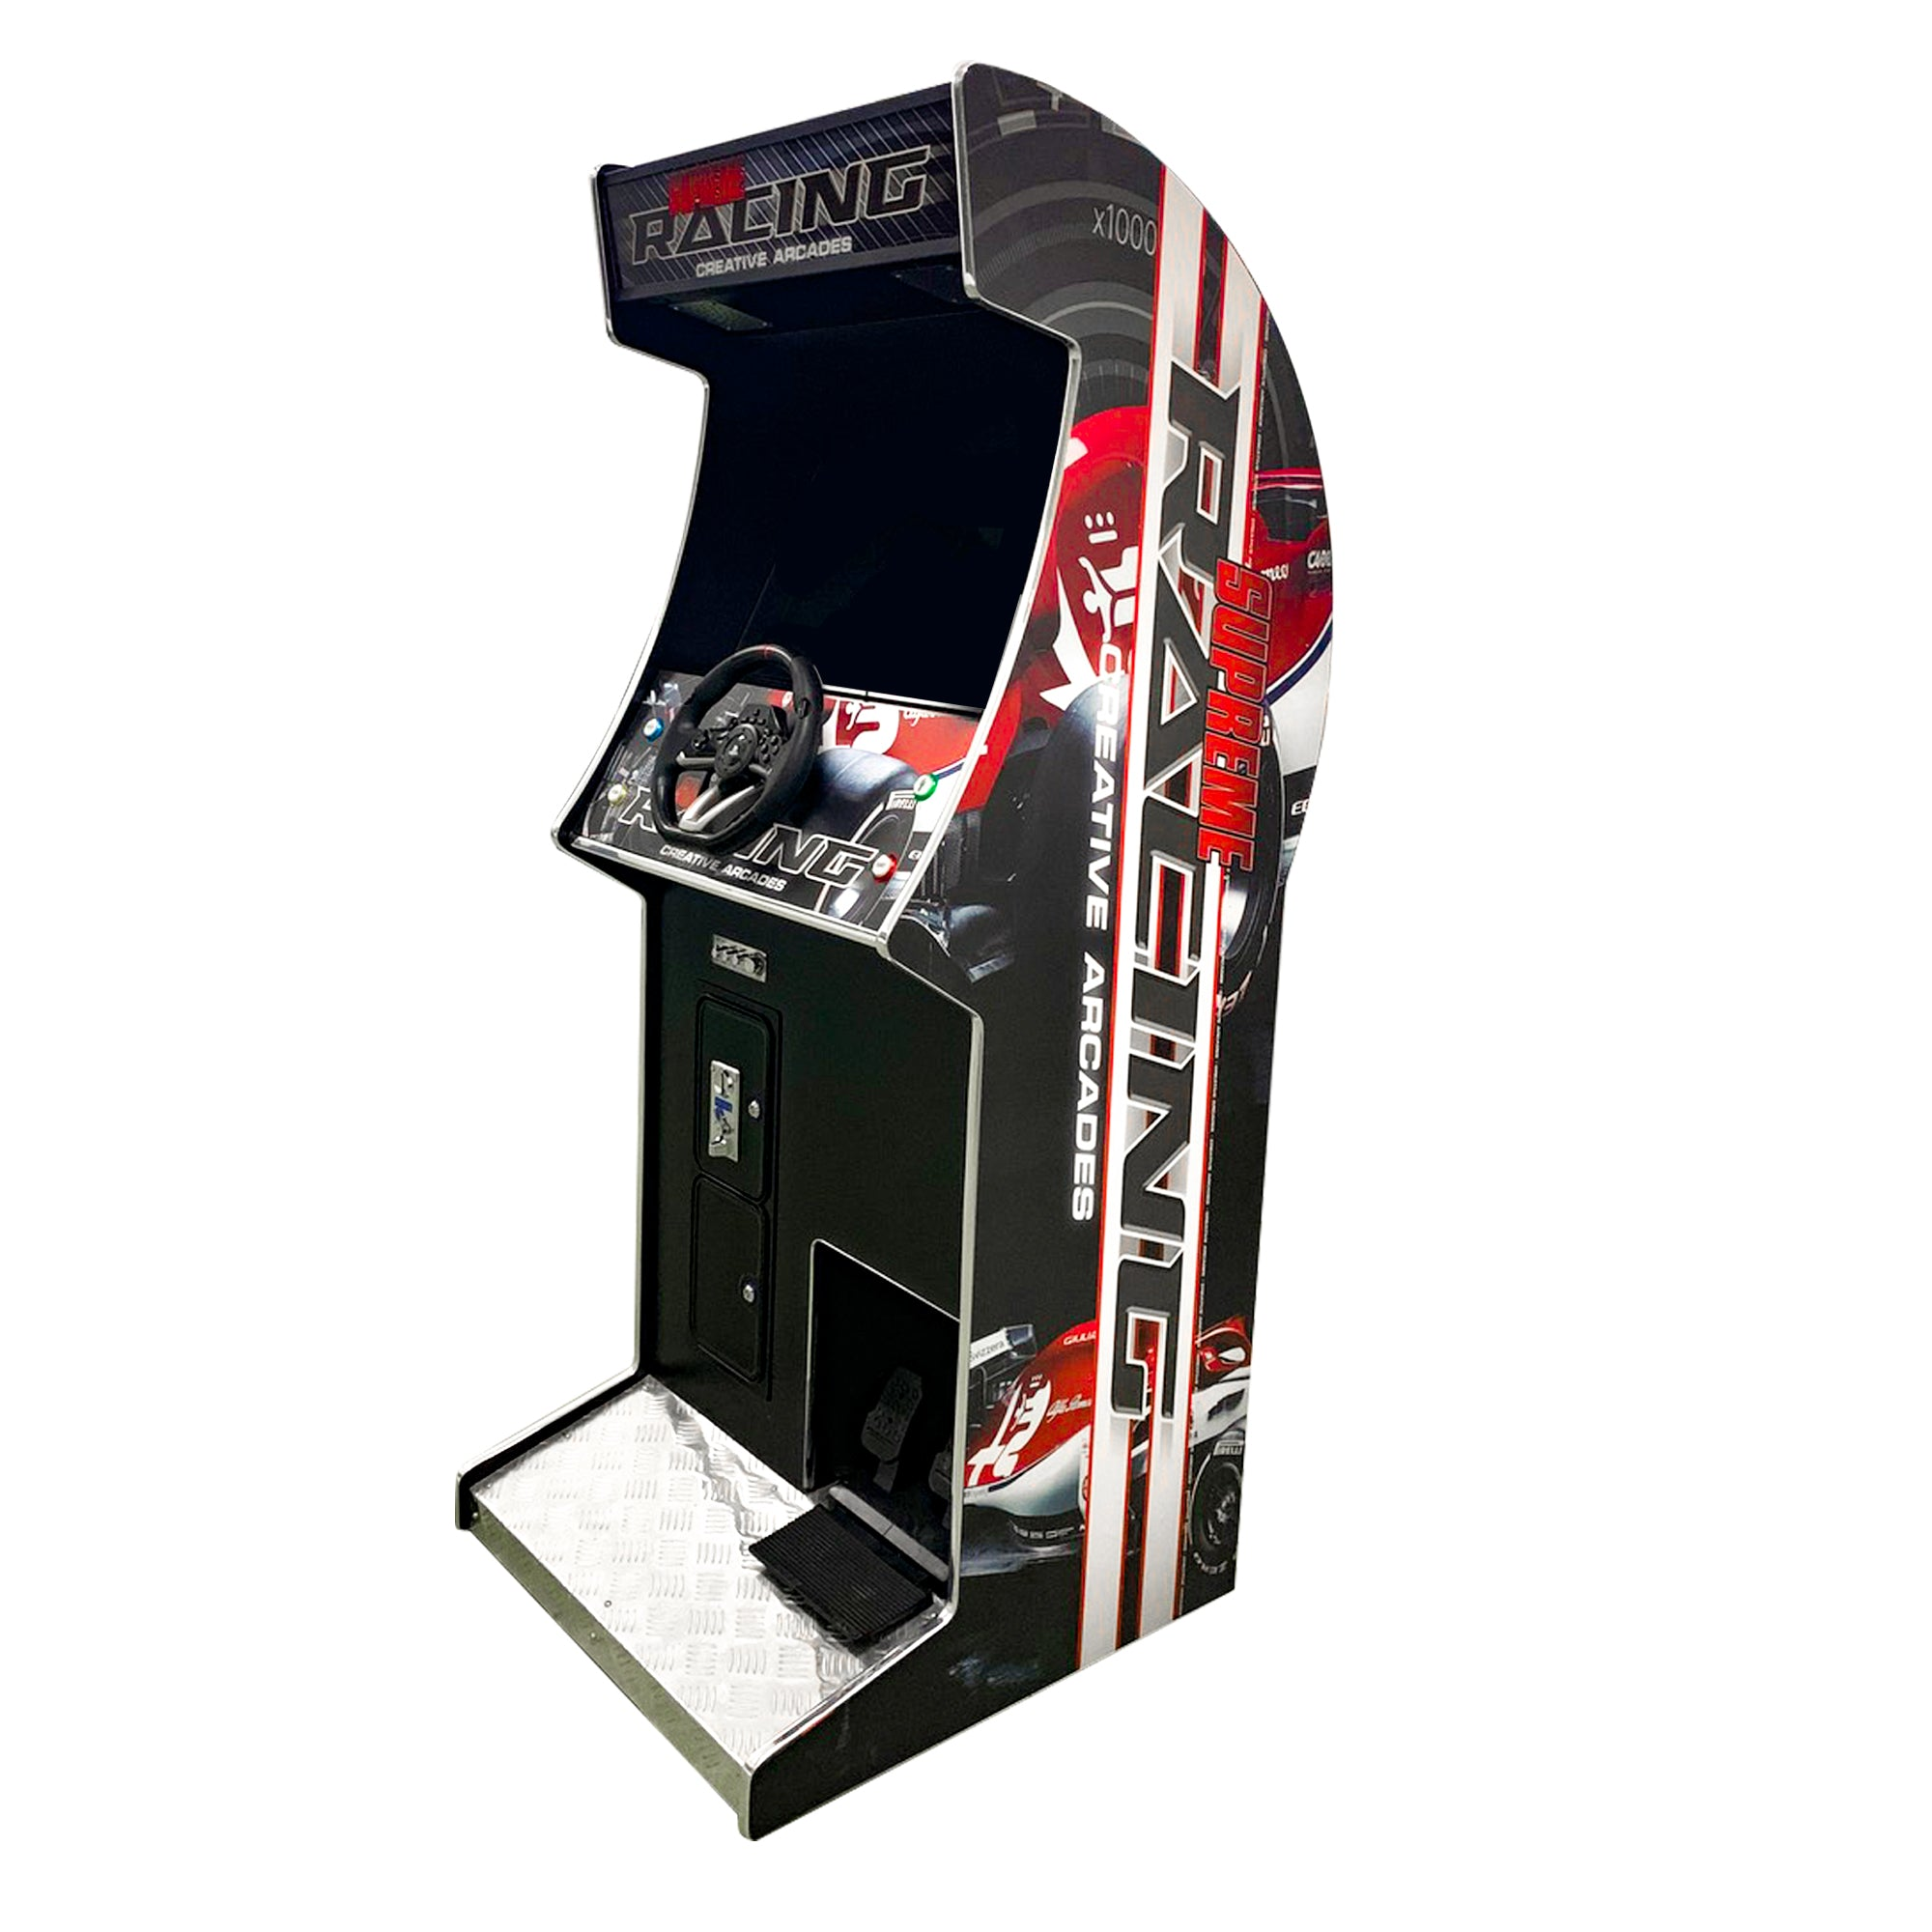 "Racing Stand-Up Arcade Machine | 129 Racing Games | 27"" LCD Monitor 